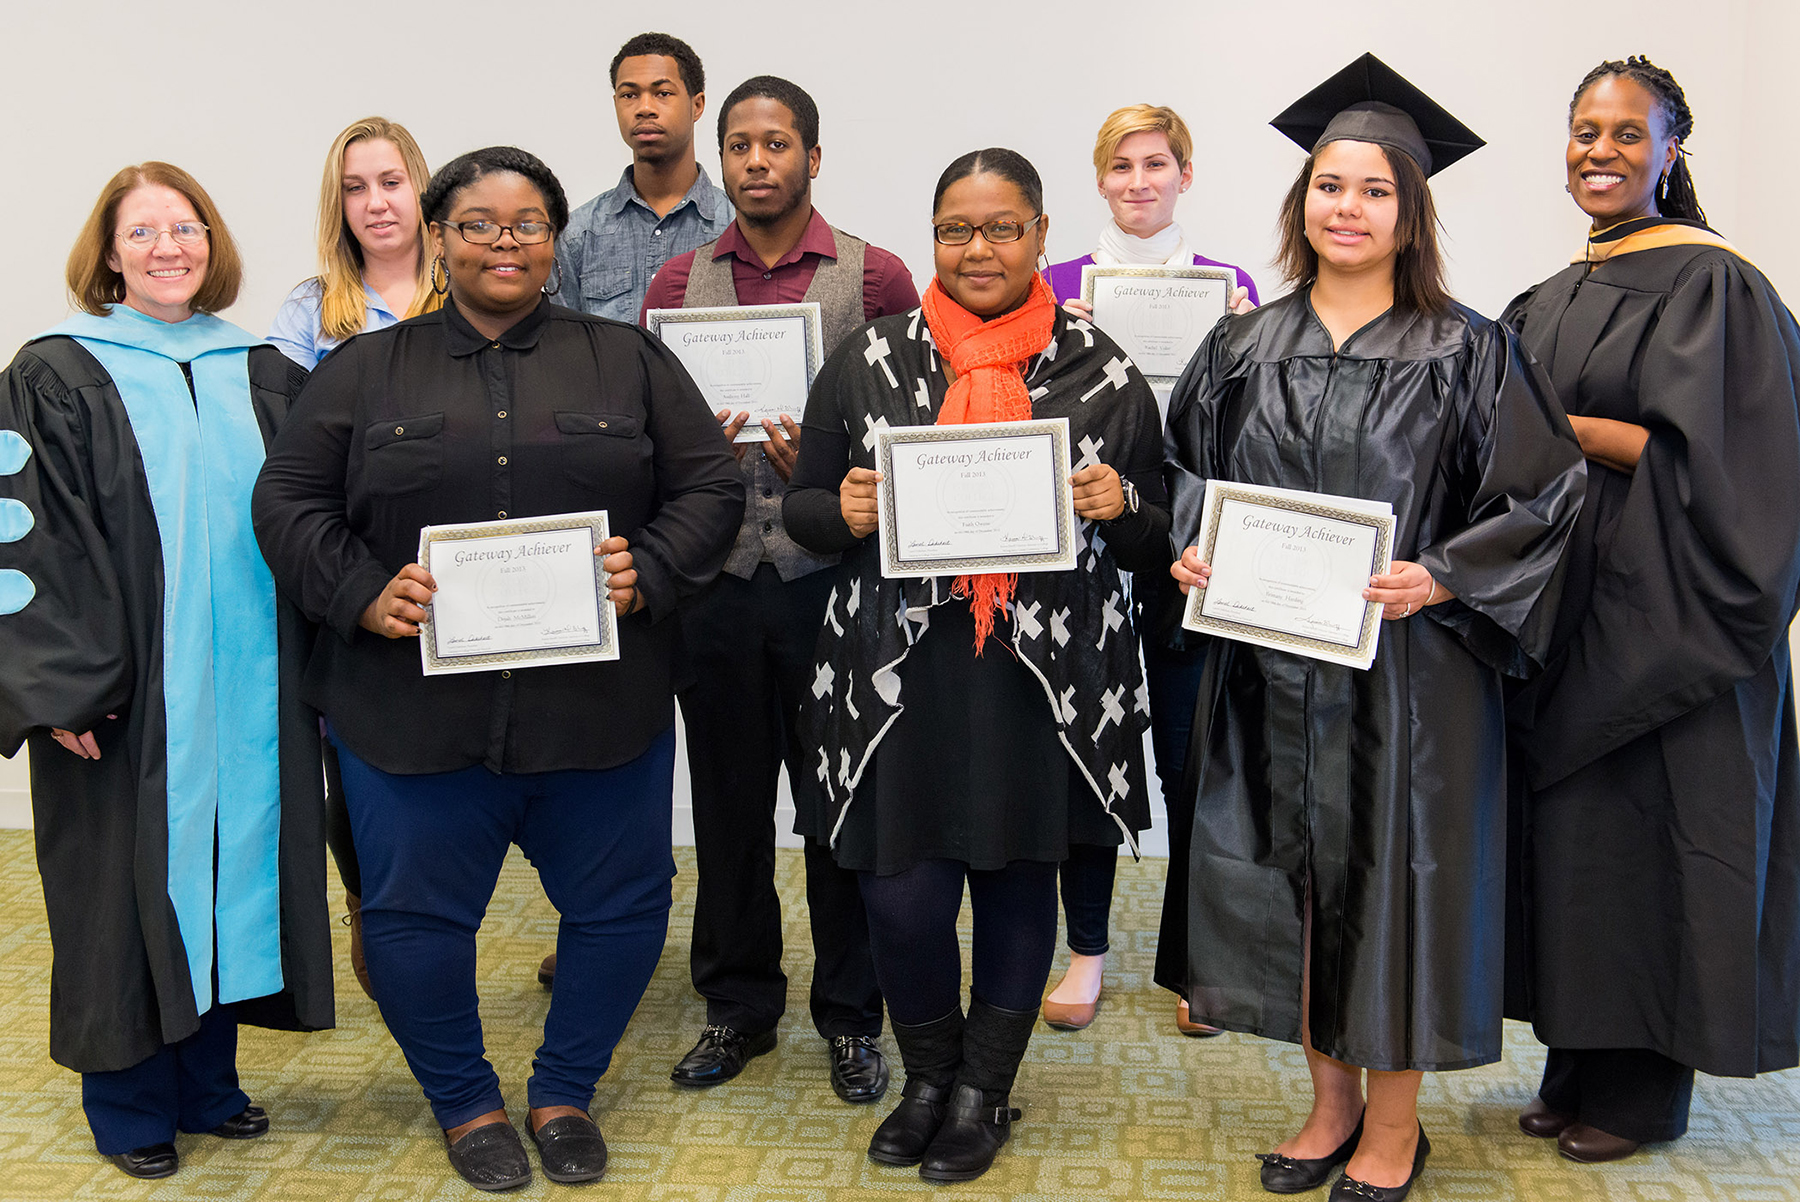 Recipients of the Gateway to College Achiever Awards included (front row, from left) Dejah McMillan, Faith Owens and Brittany Harding and (back row, from left) Rosemary Lux, Khary Harris, Anthony Hall, and Rachel Voltz. Standing with the group are MCCC Vice President for Student Affairs and Enrollment Management Kathrine Swanson (left) and Gateway Program Director Keima Sheriff (right). Missing from the photo are Marcus Gordon, Amber Keys and Yasmin Rich.